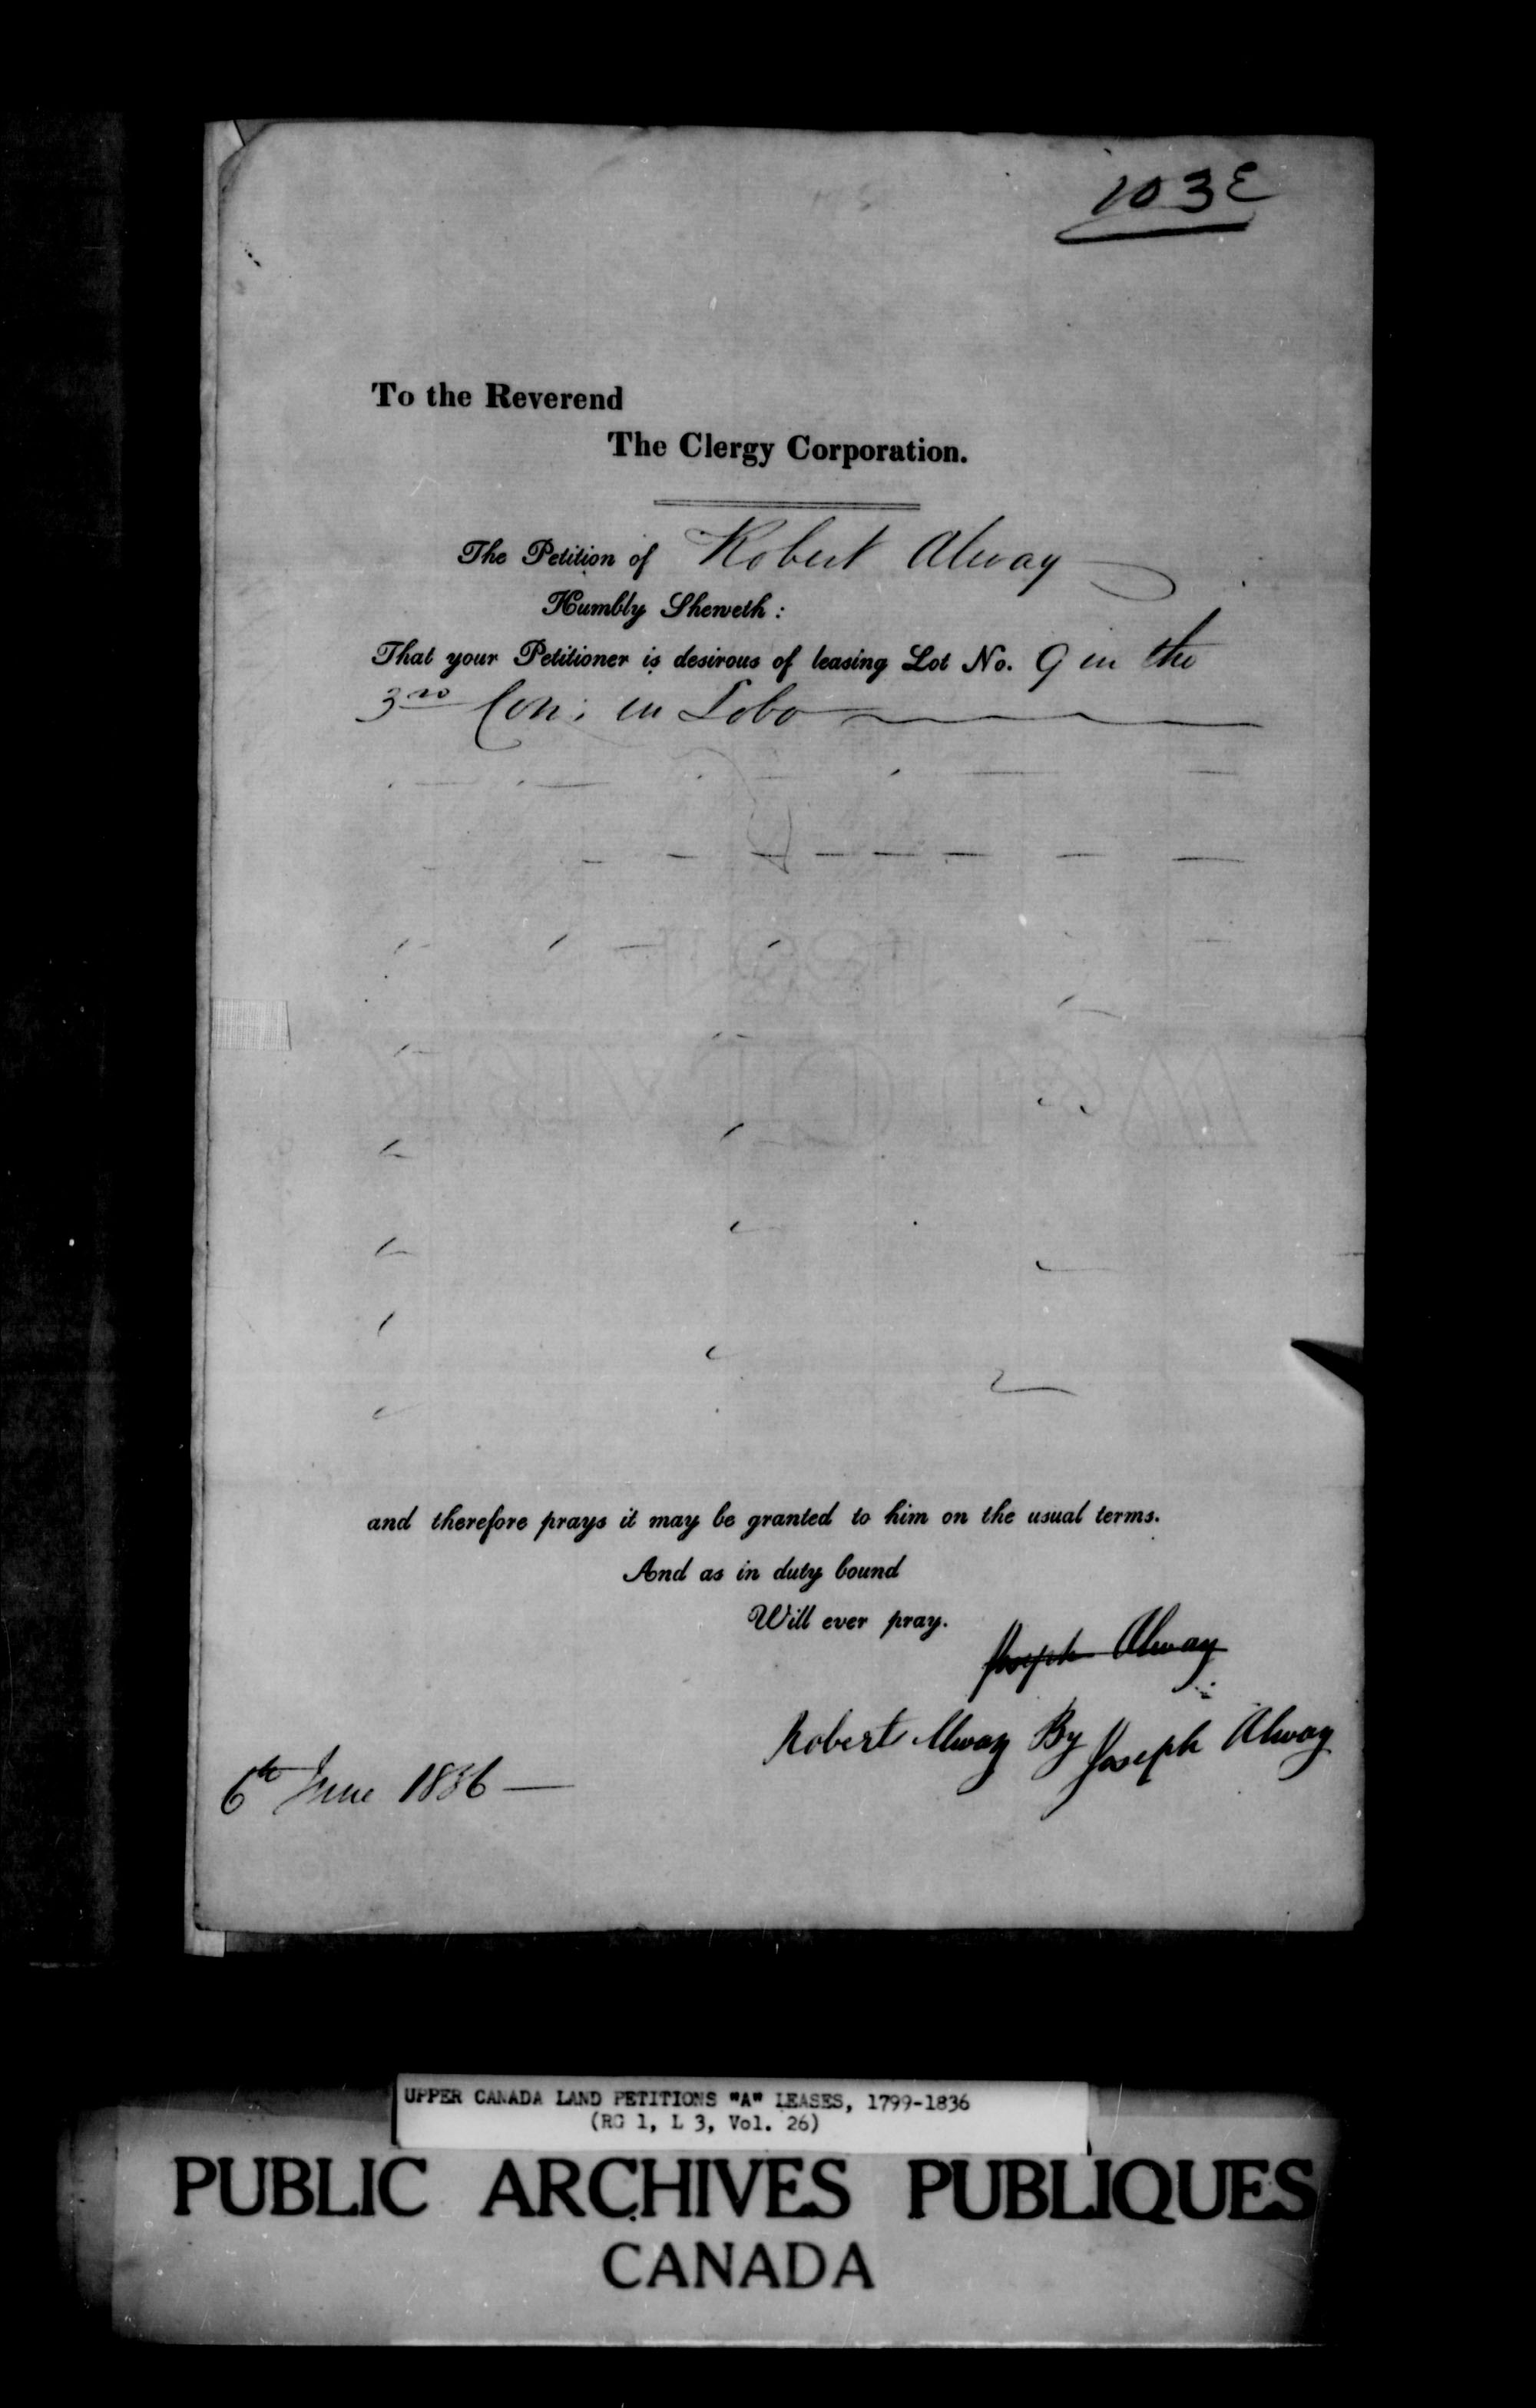 Title: Upper Canada Land Petitions (1763-1865) - Mikan Number: 205131 - Microform: c-1618